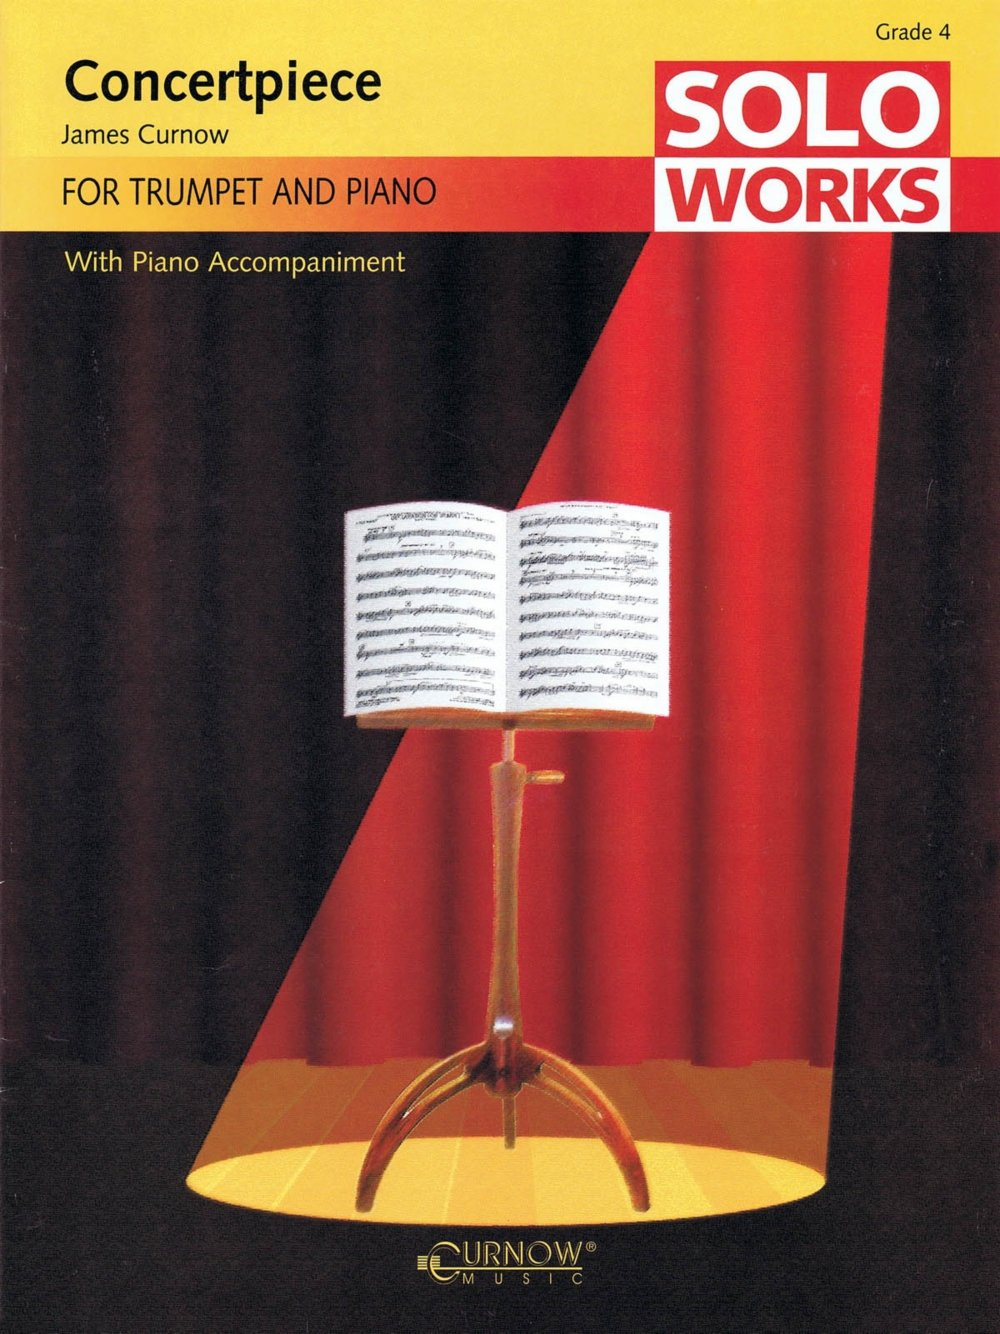 Curnow Music Concertpiece (Soloworks with Piano Accompaniment - Grade 4 - Trumpet) Concert Band Level 4 pdf